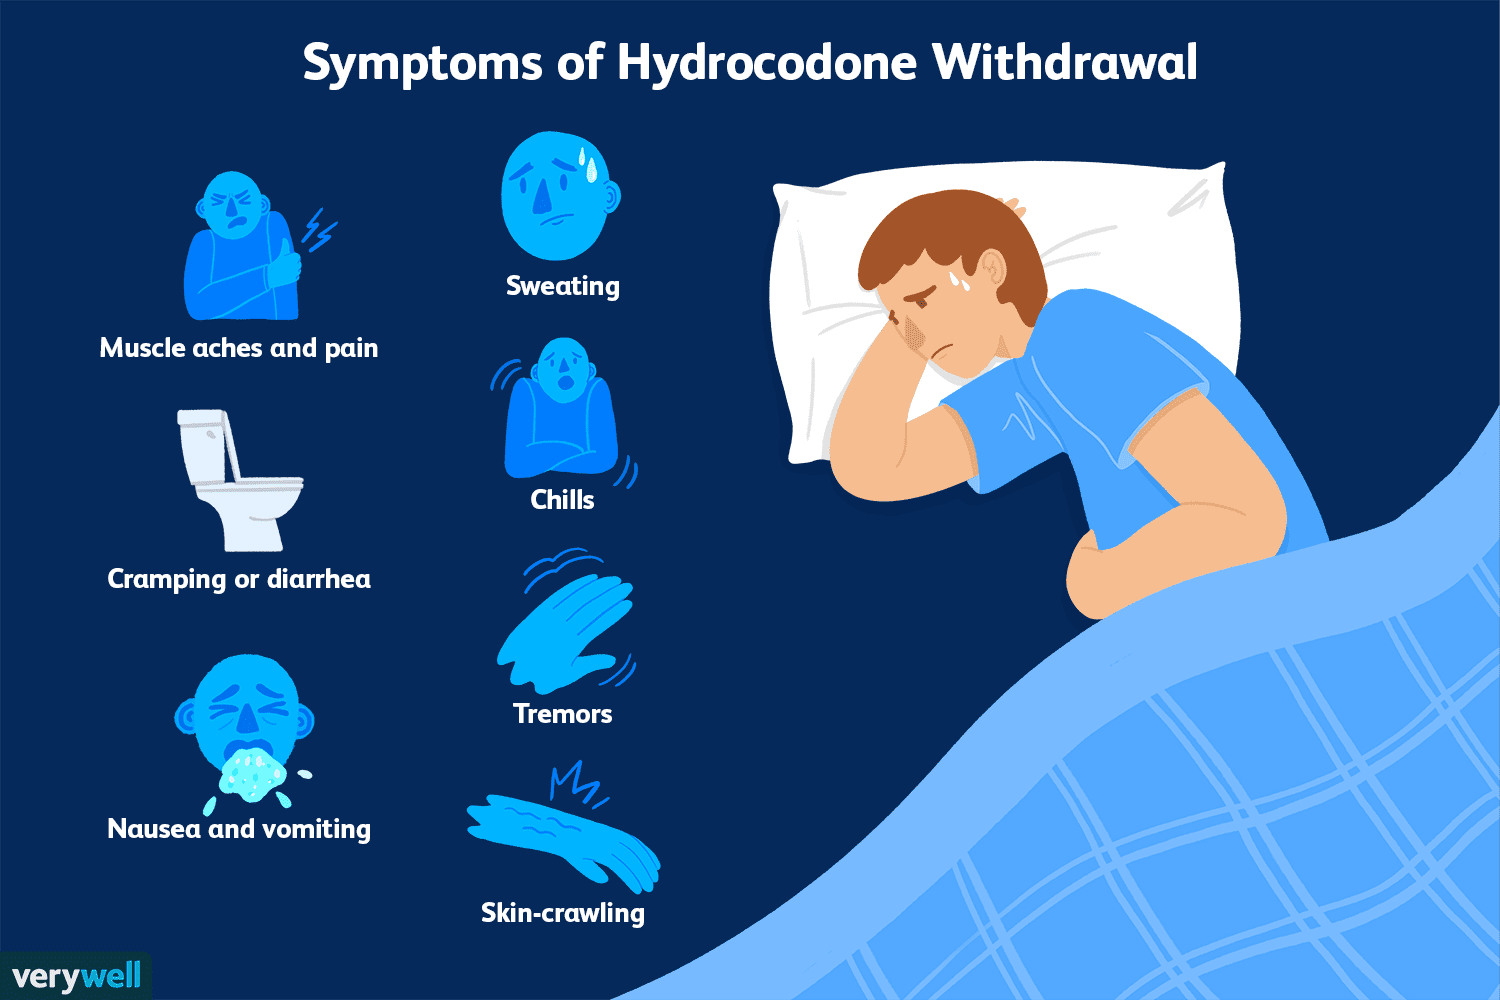 Hydrocodone Withdrawal: Symptoms, Timeline, and Treatment